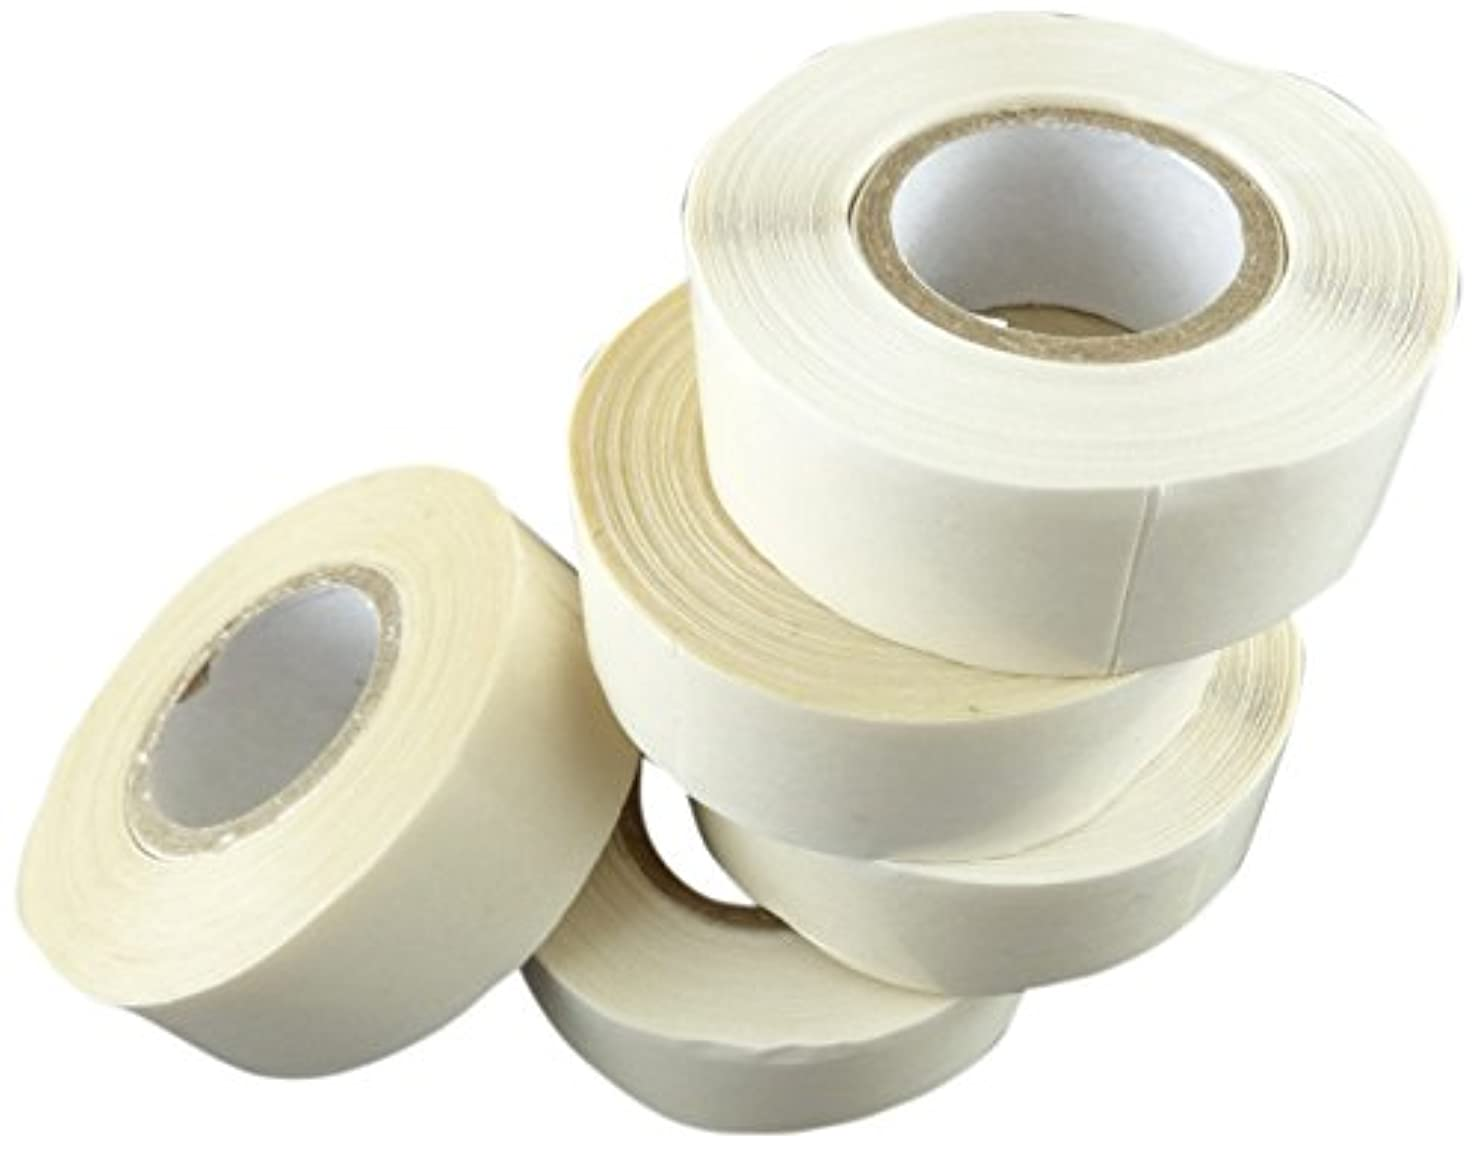 Personal Impressions Tissue Tape-5 Rolls, Synthetic Material White, 13.5 x 13.5 x 3.7 cm